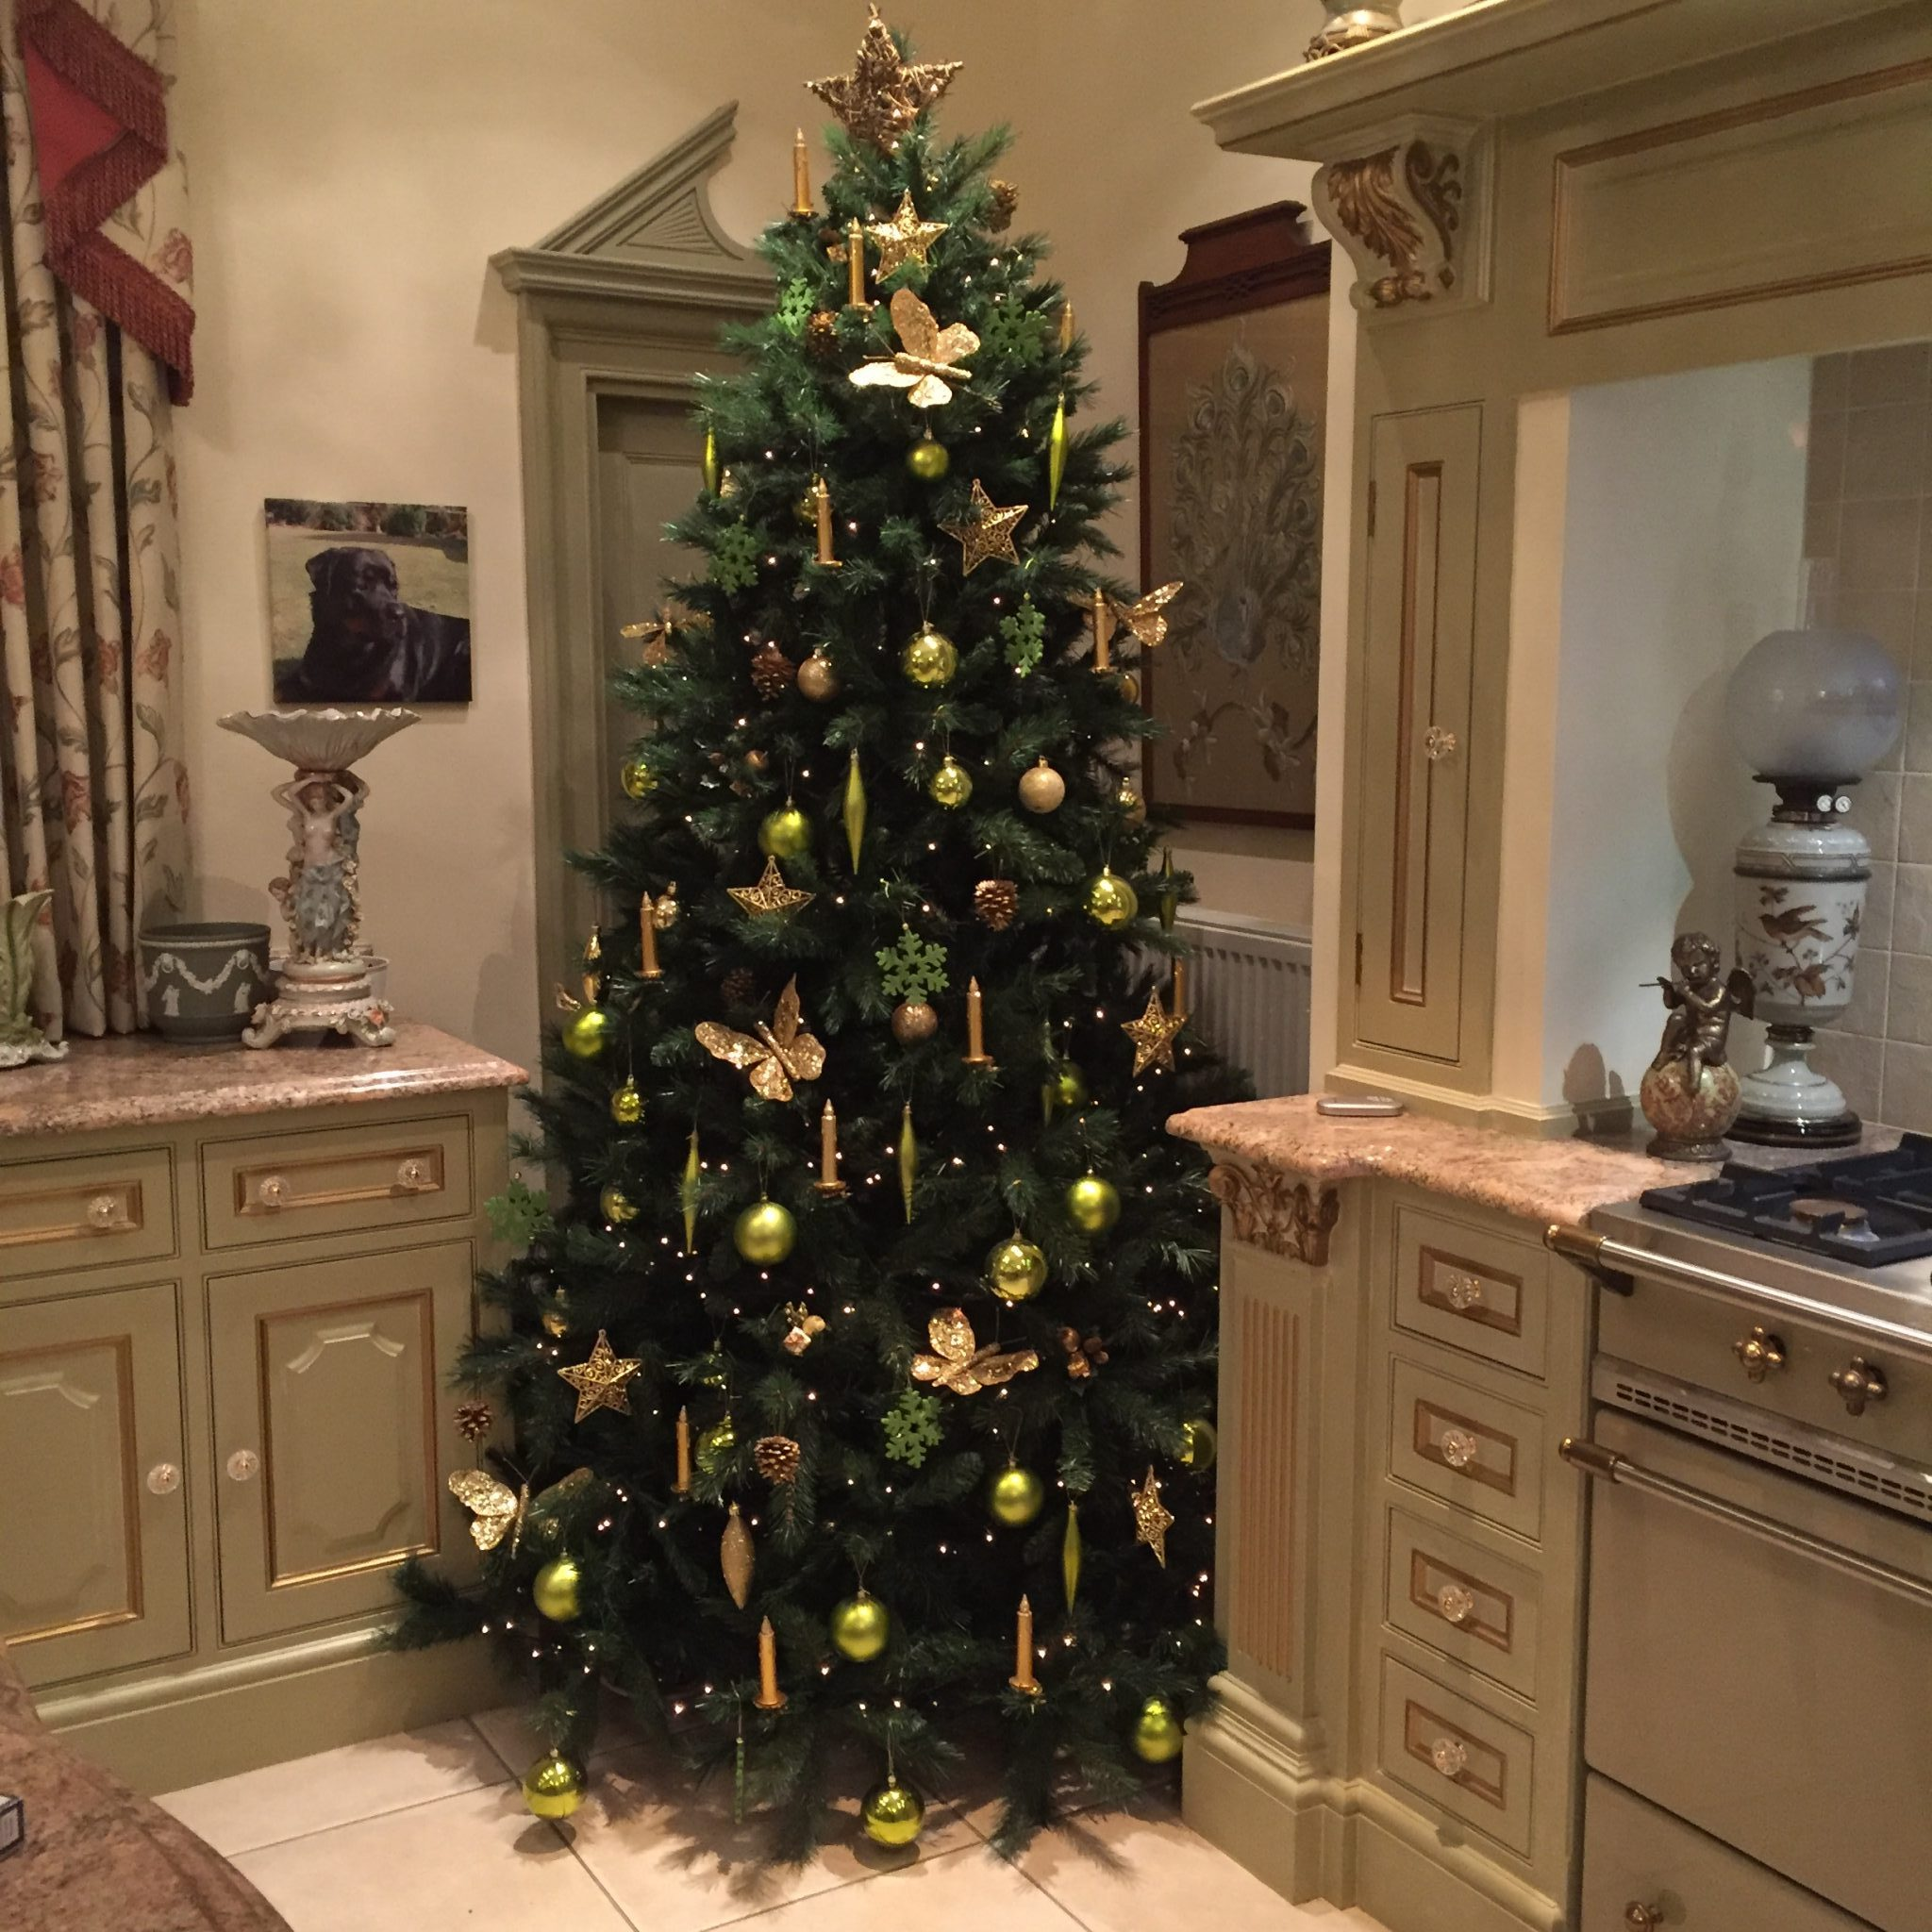 Christmas in Rye at Saltcote Place